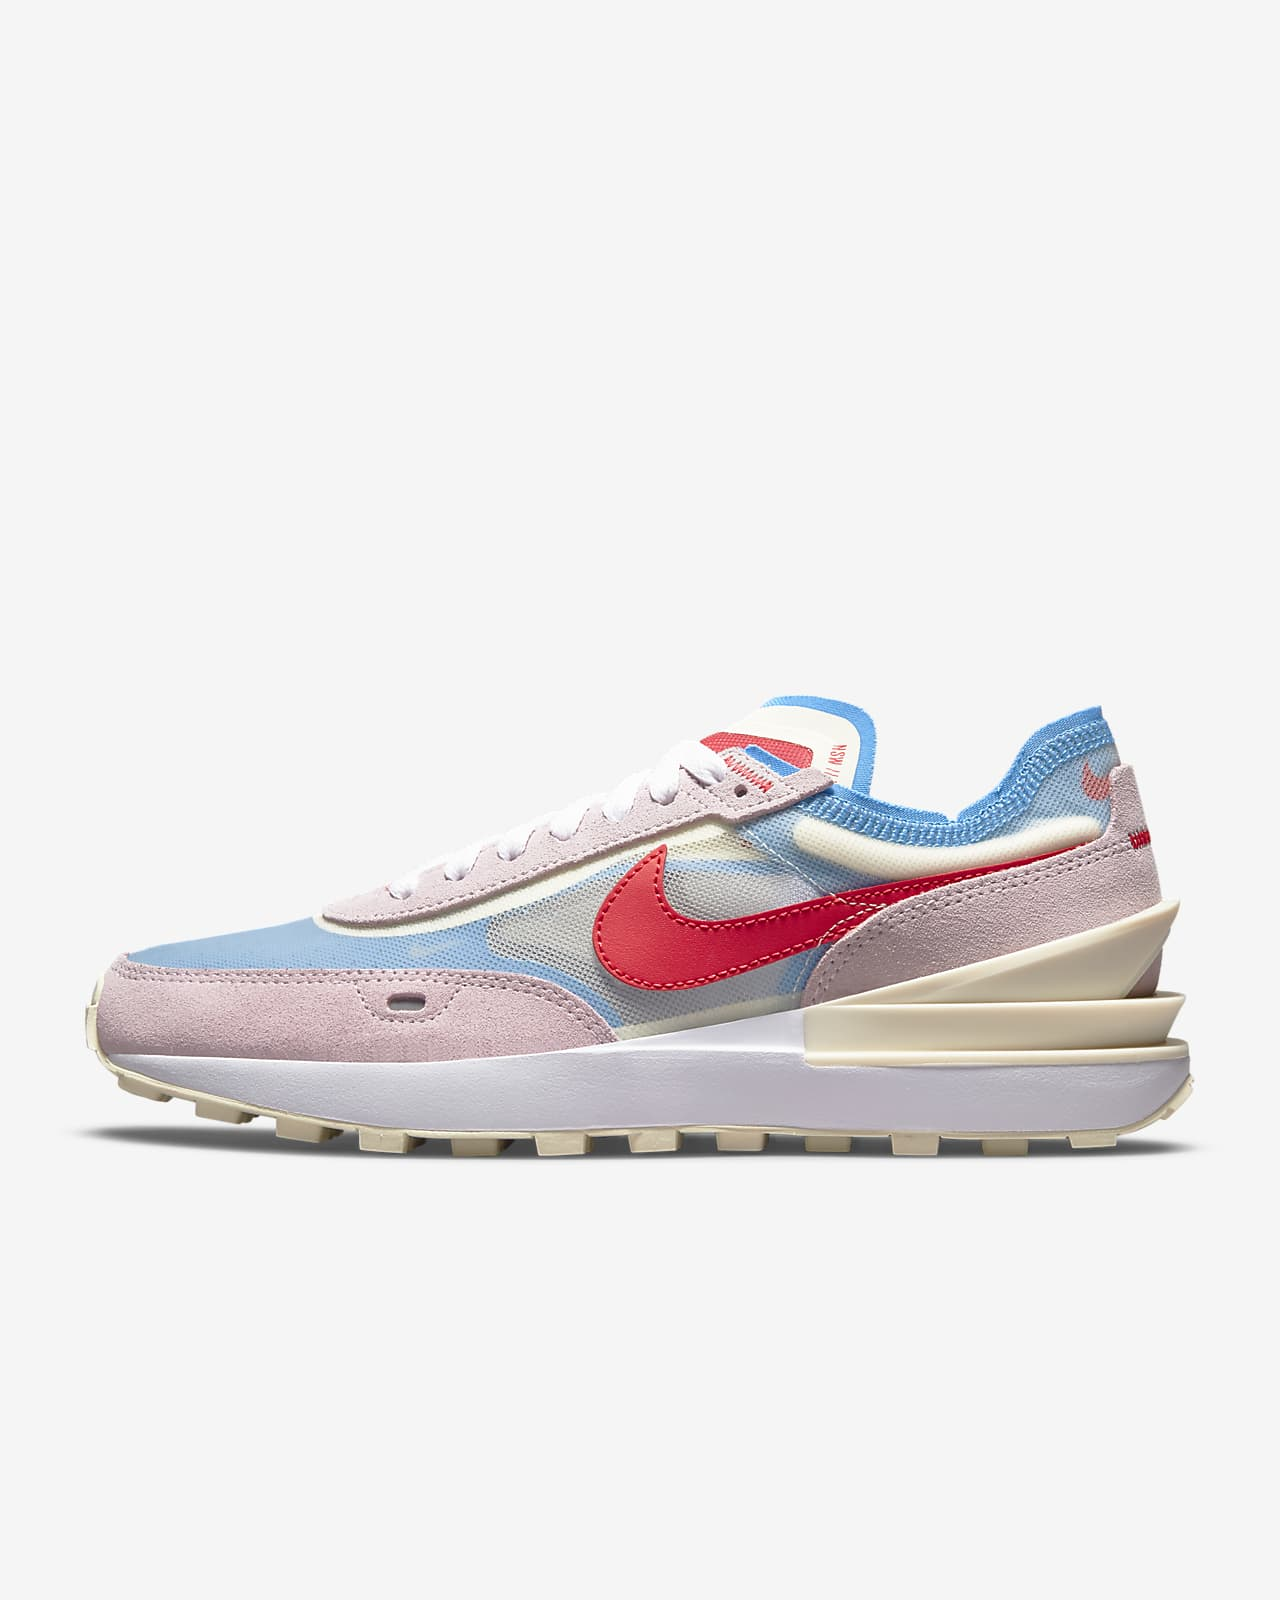 Chaussures Nike Waffle One pour Femme